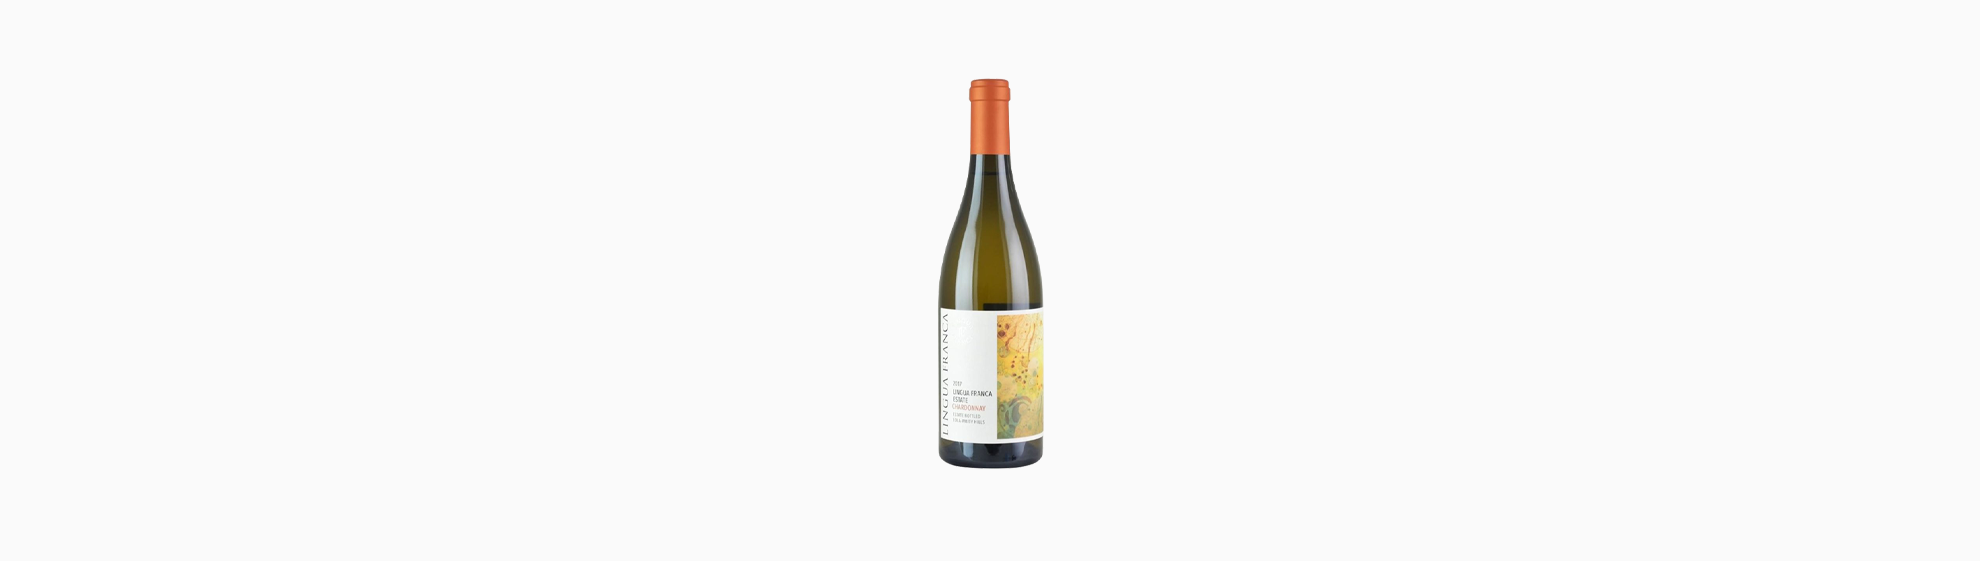 Wine bottle of Lingua Franca Estate Chardonnay 2018 (Eola-Amity Hills)